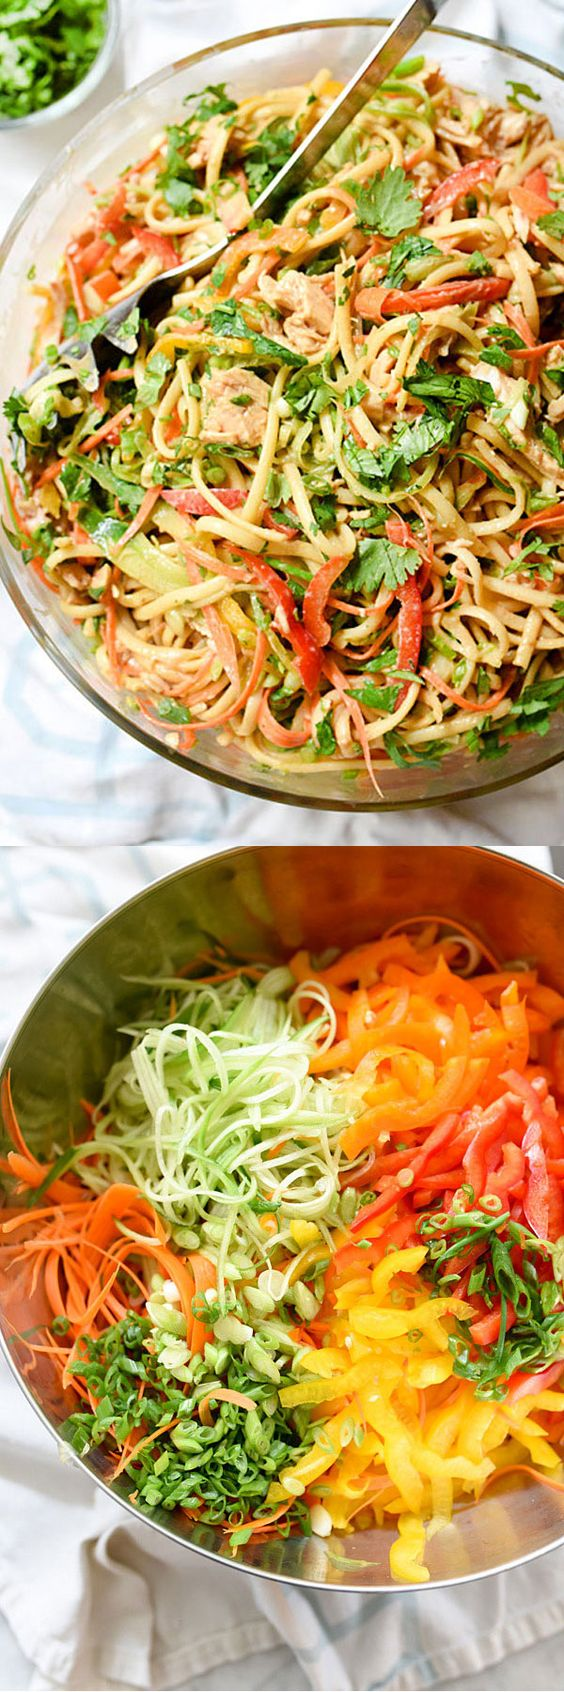 This Asian-flavored pasta salad is one of my most popular all-in-one meals on…